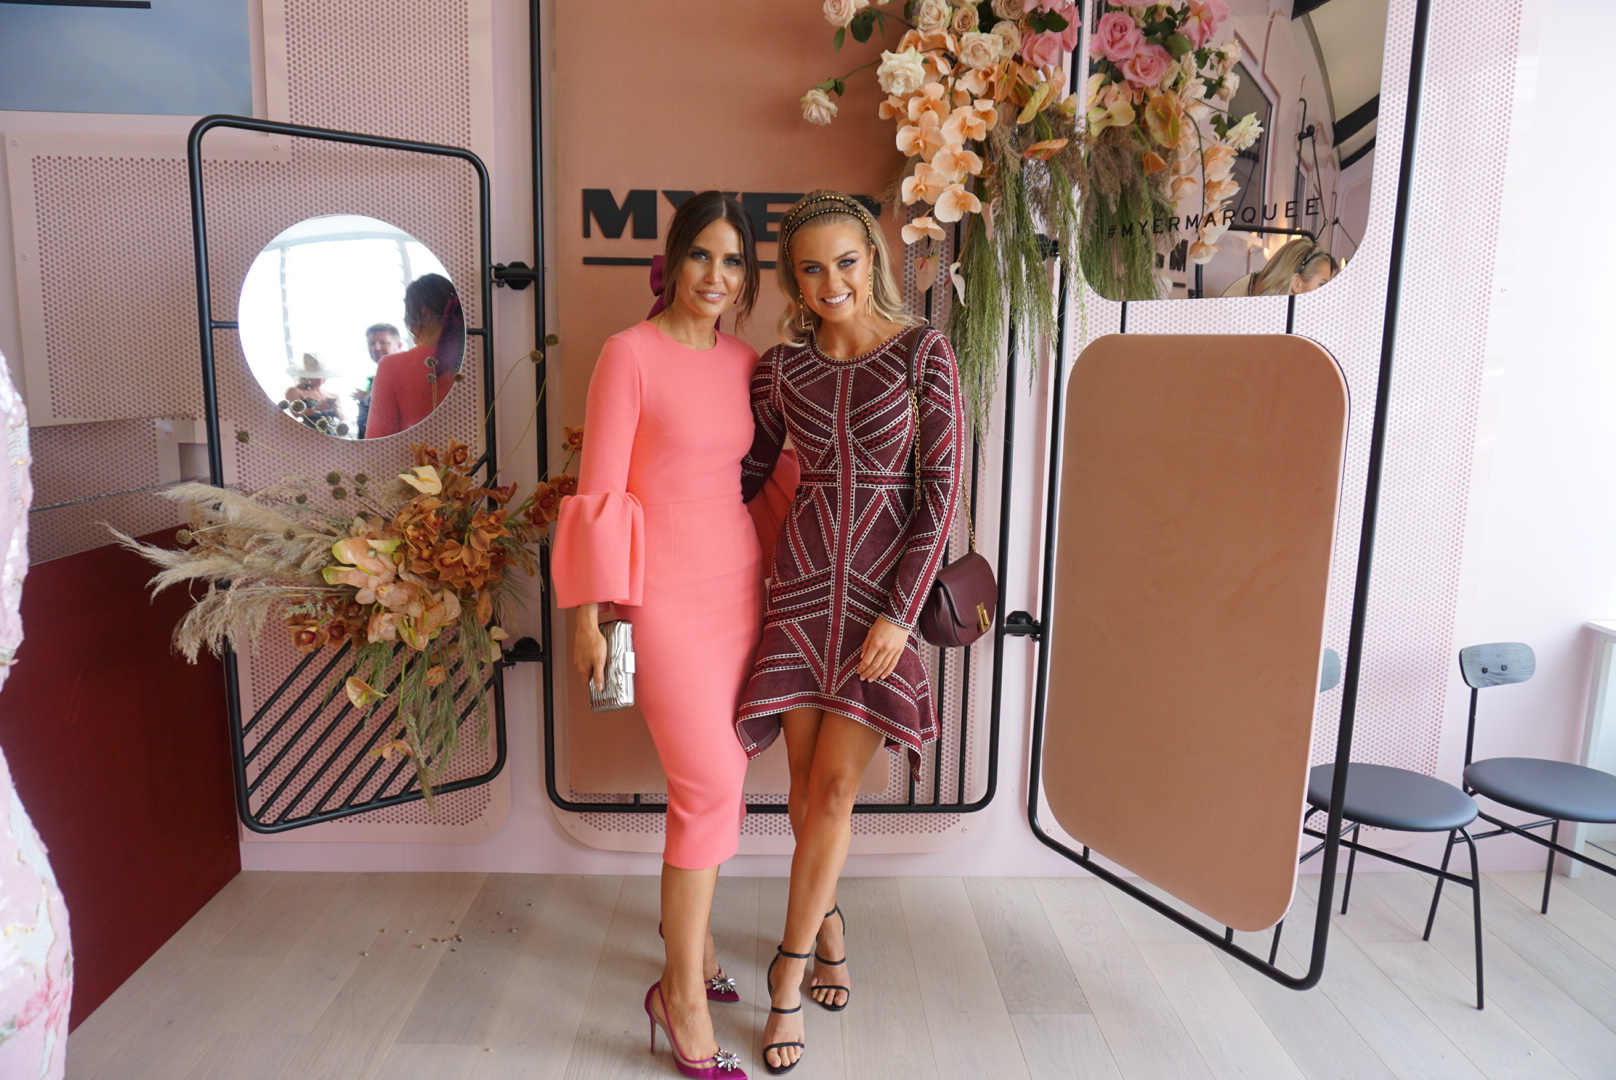 Elyse Knowles Melbourne Cup Day 2016  31-10-16, 11 26 00 pm.jpg